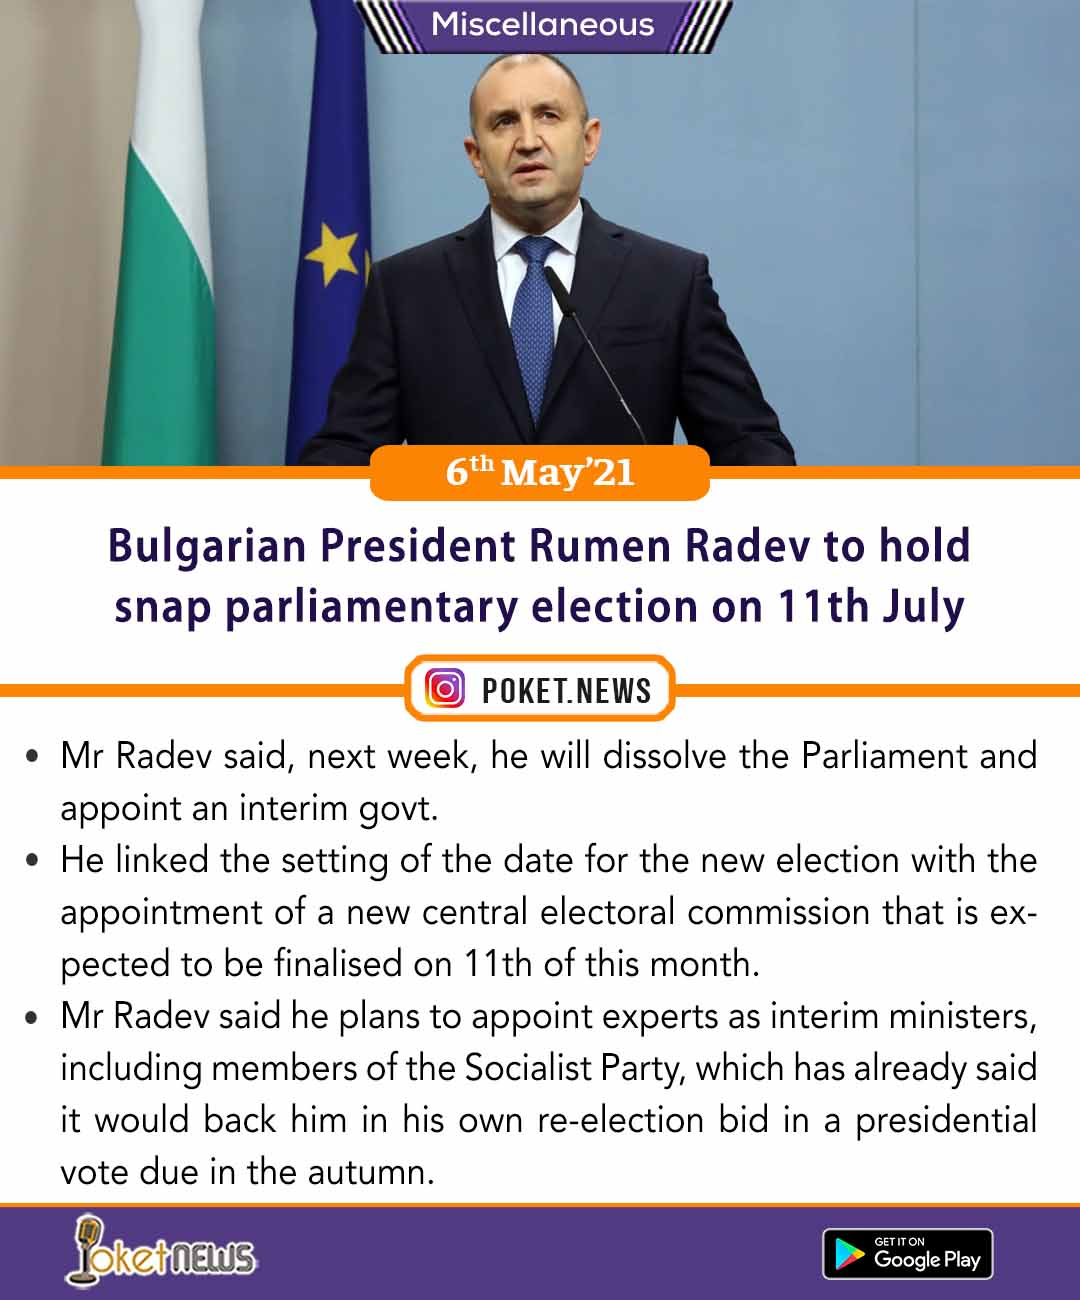 Bulgarian President Rumen Radev to hold snap parliamentary election on 11th July